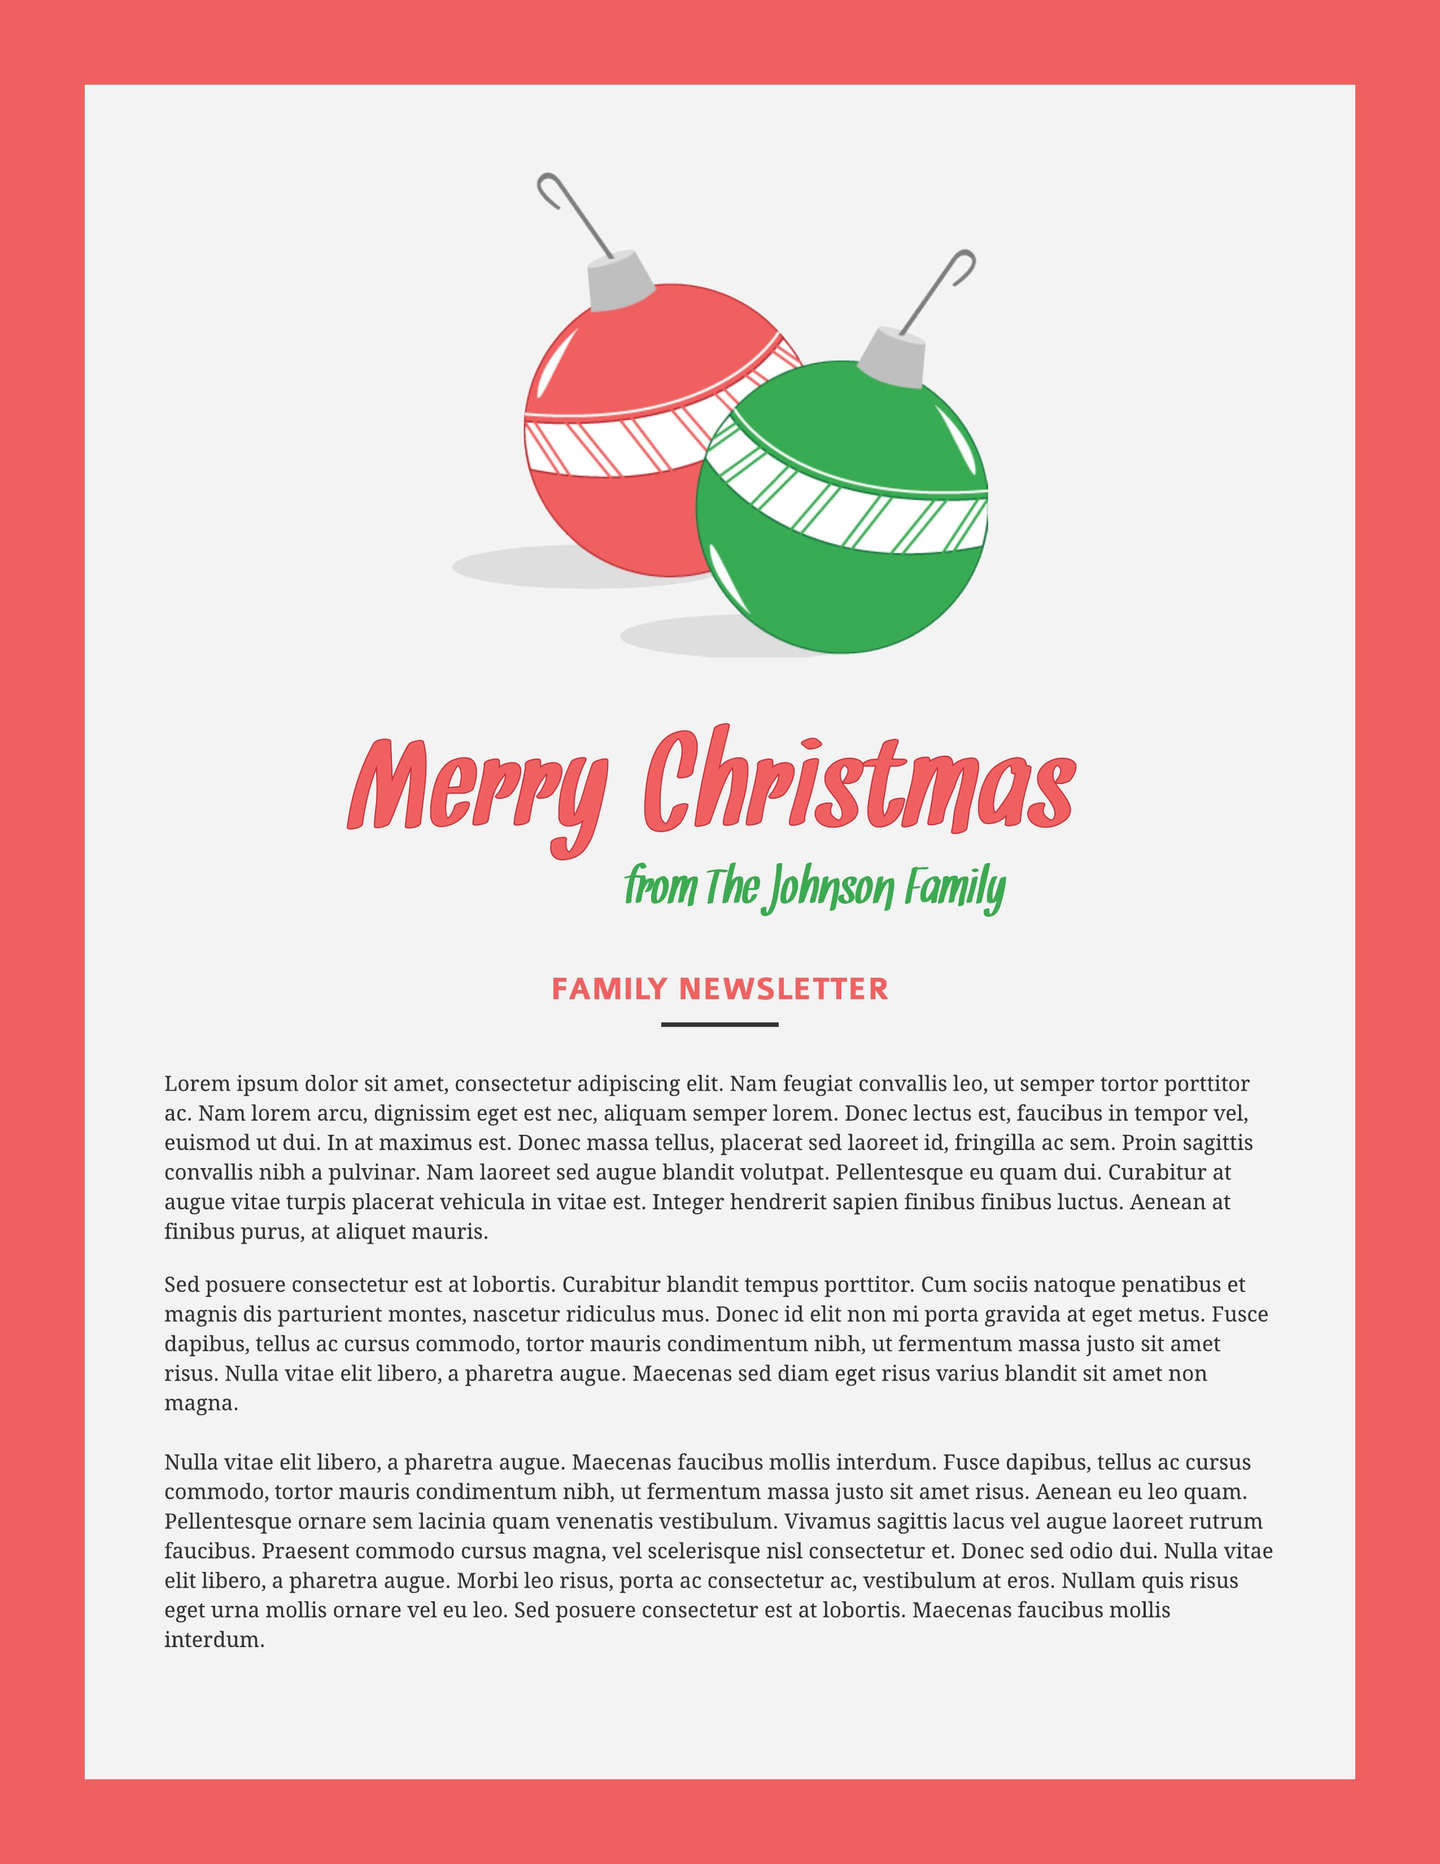 Free printable newsletter templates email newsletter for Christmas newsletter design ideas